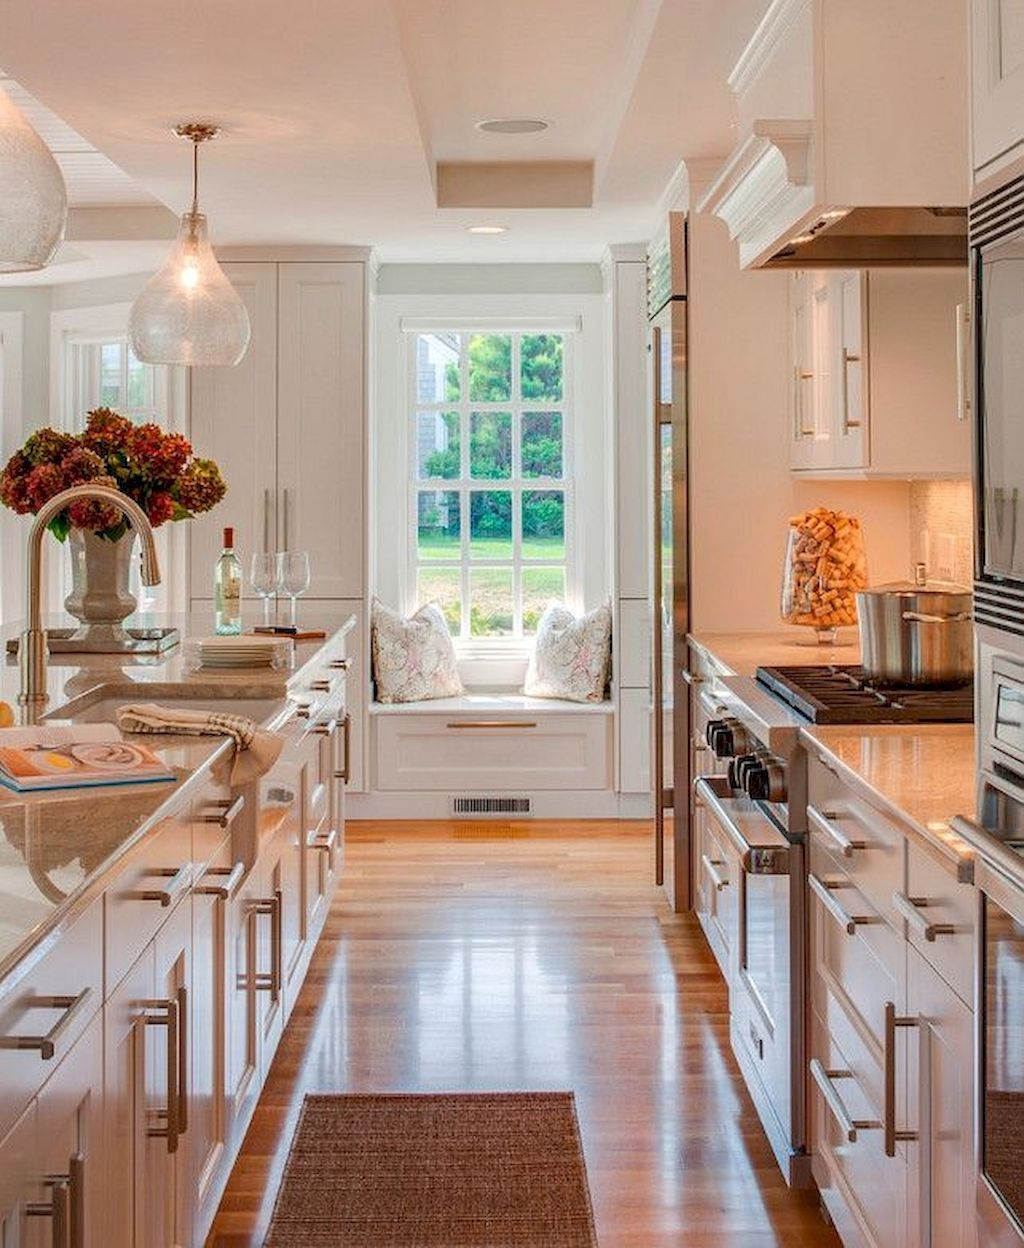 60 Galley Kitchens Inspirations Planning Tips And Gallery Elonahome Com Cottage Style Kitchen Galley Kitchen Remodel Window Seat Kitchen